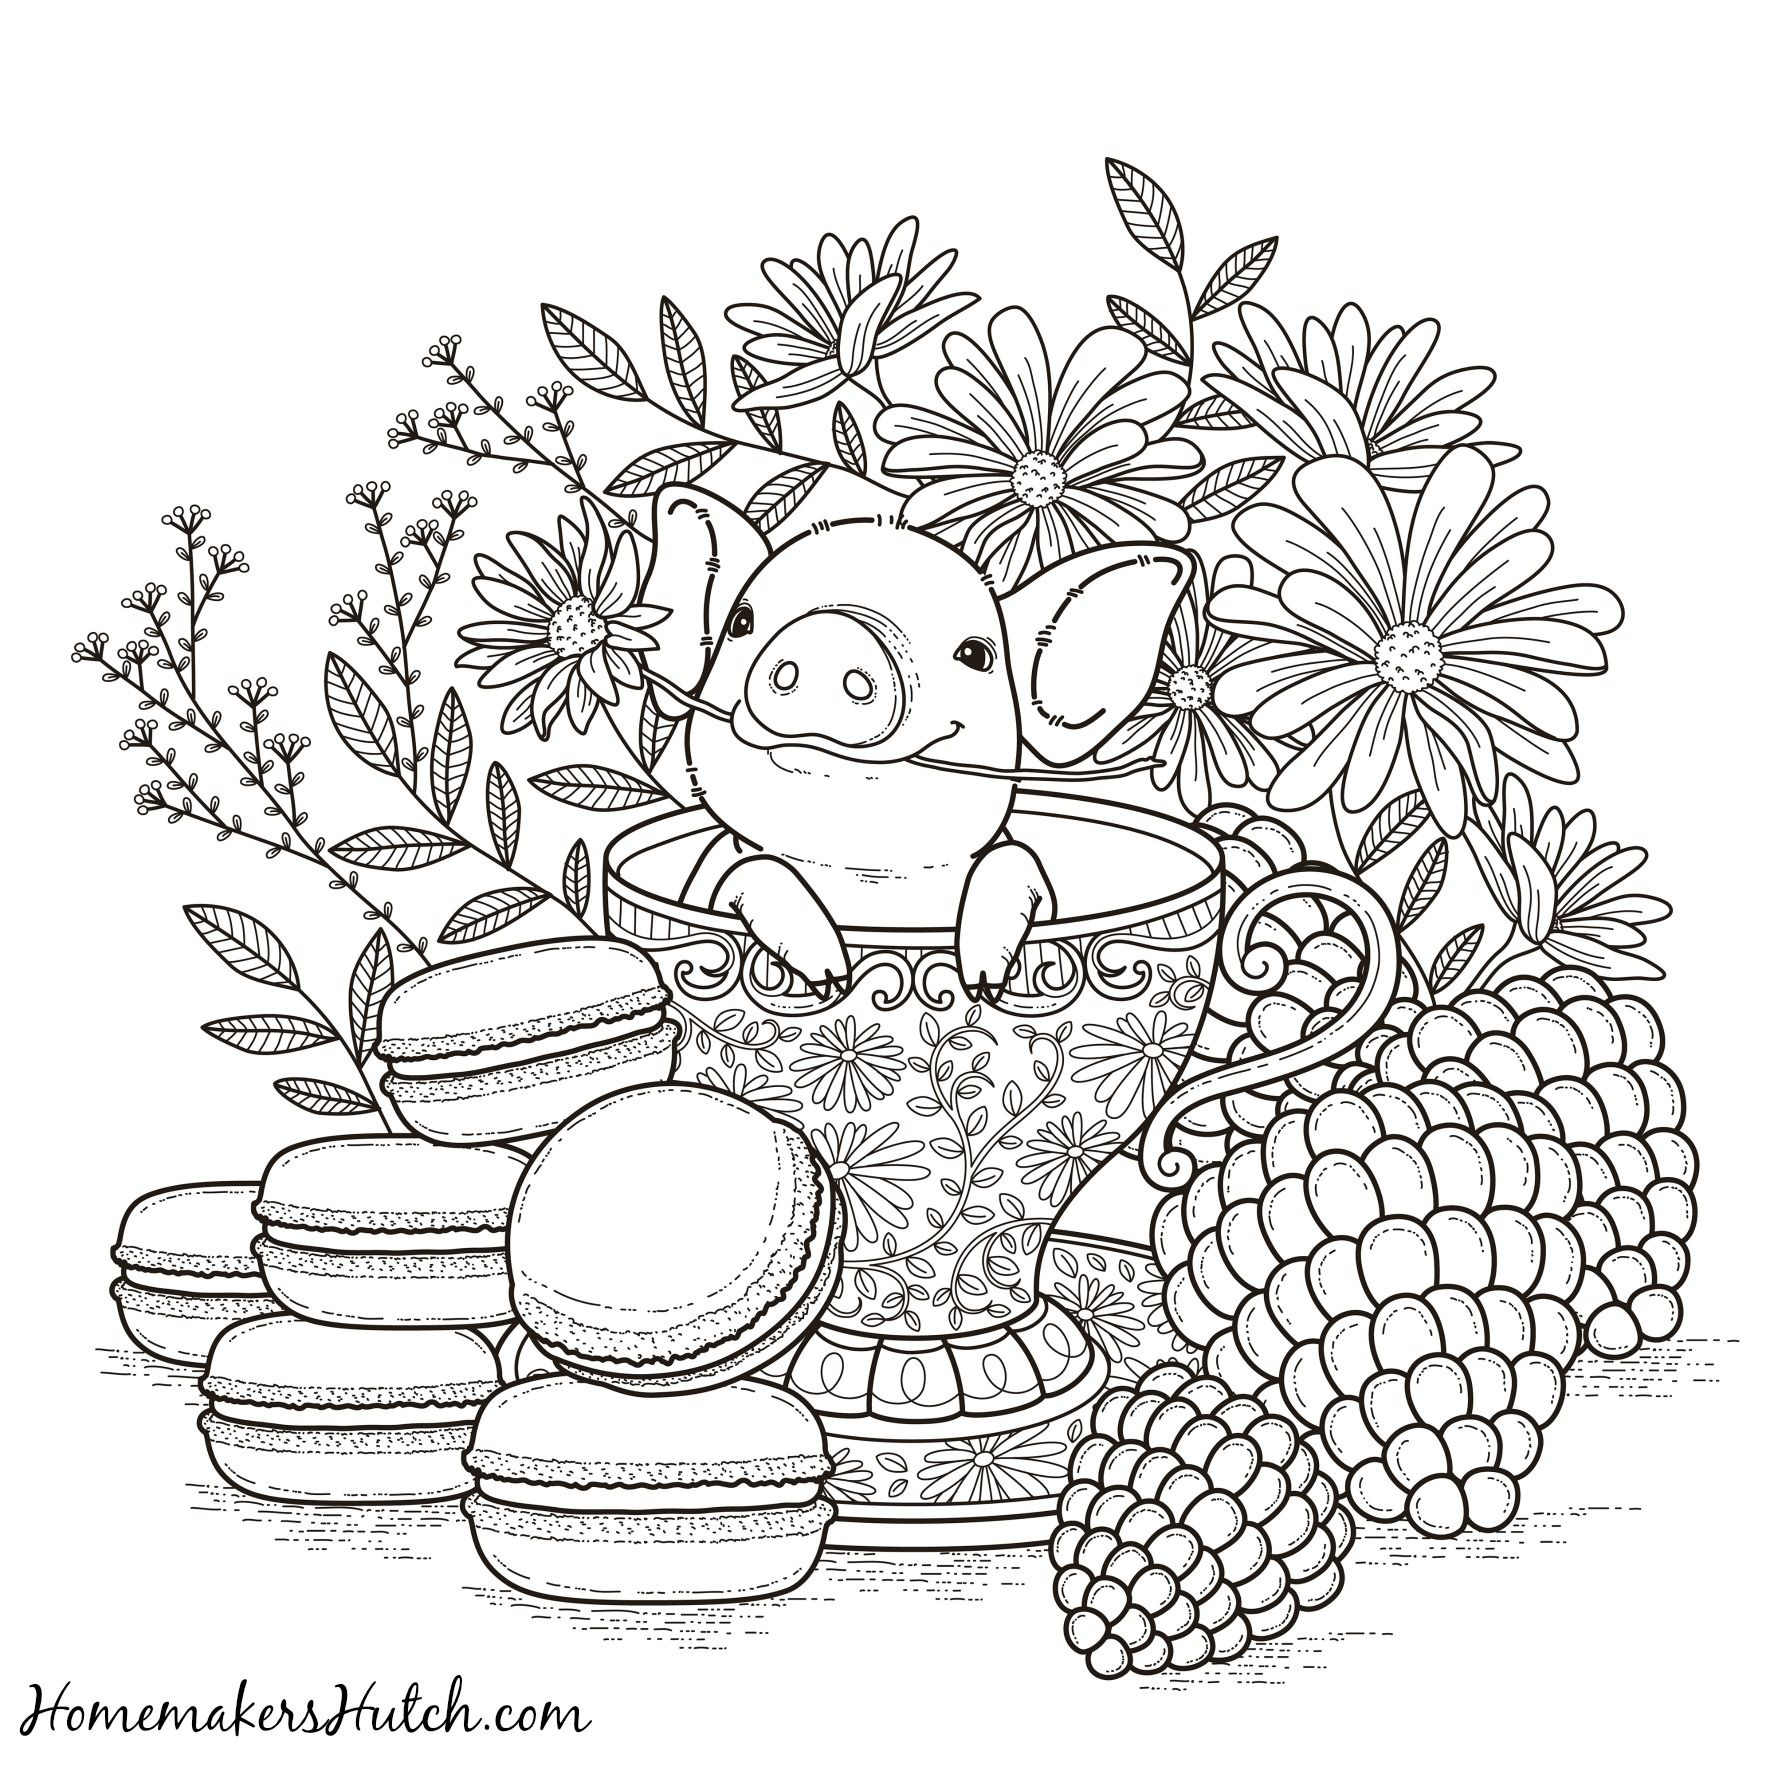 pig in a tea cup adult coloring page - Pig Coloring Pages